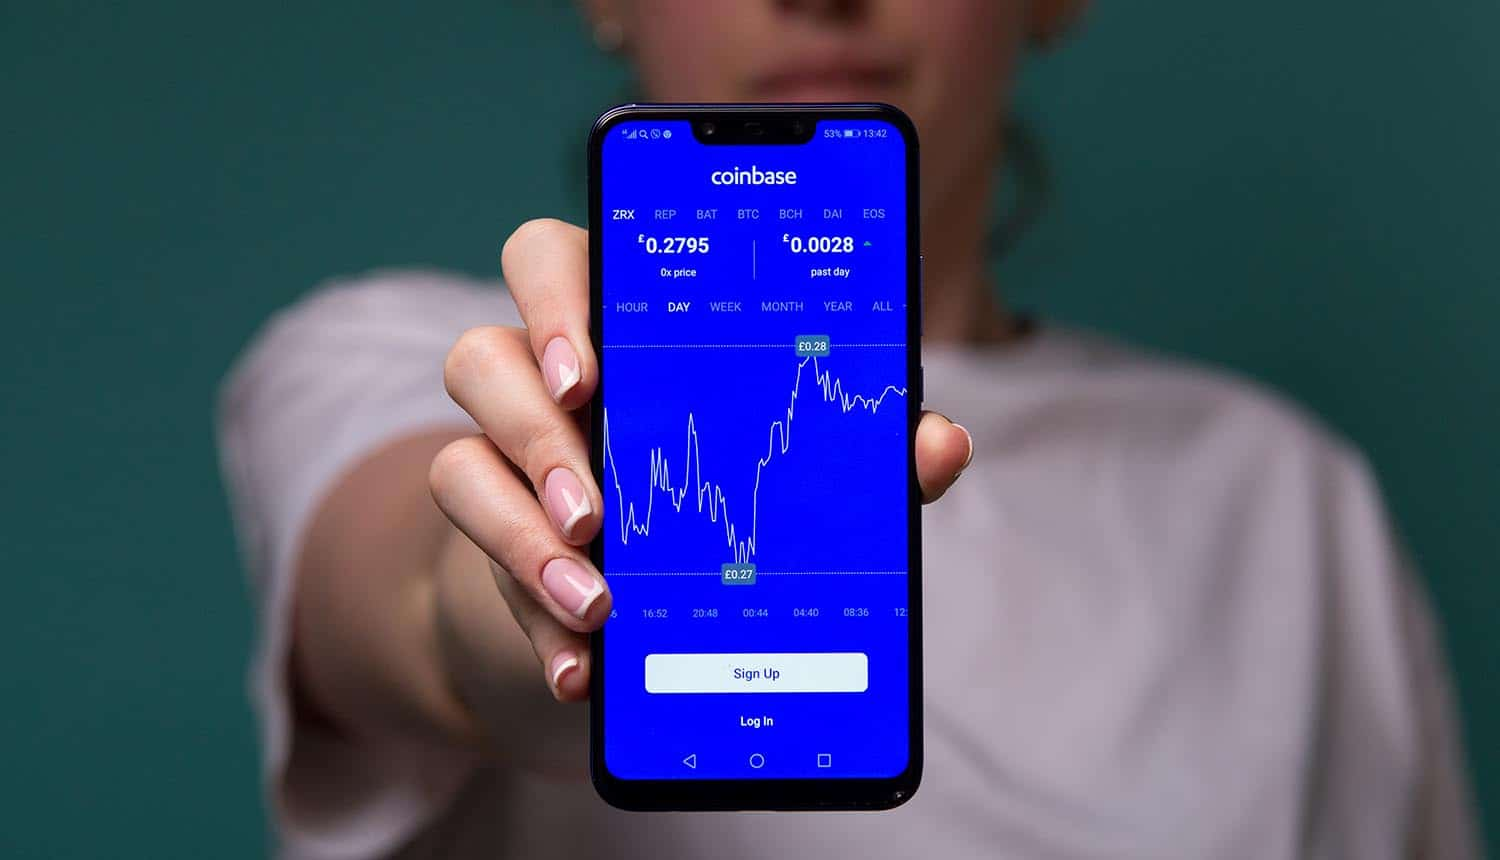 Coinbase on mobile phone showing Coinbase transparency report with information requests from US law enforcement agencies